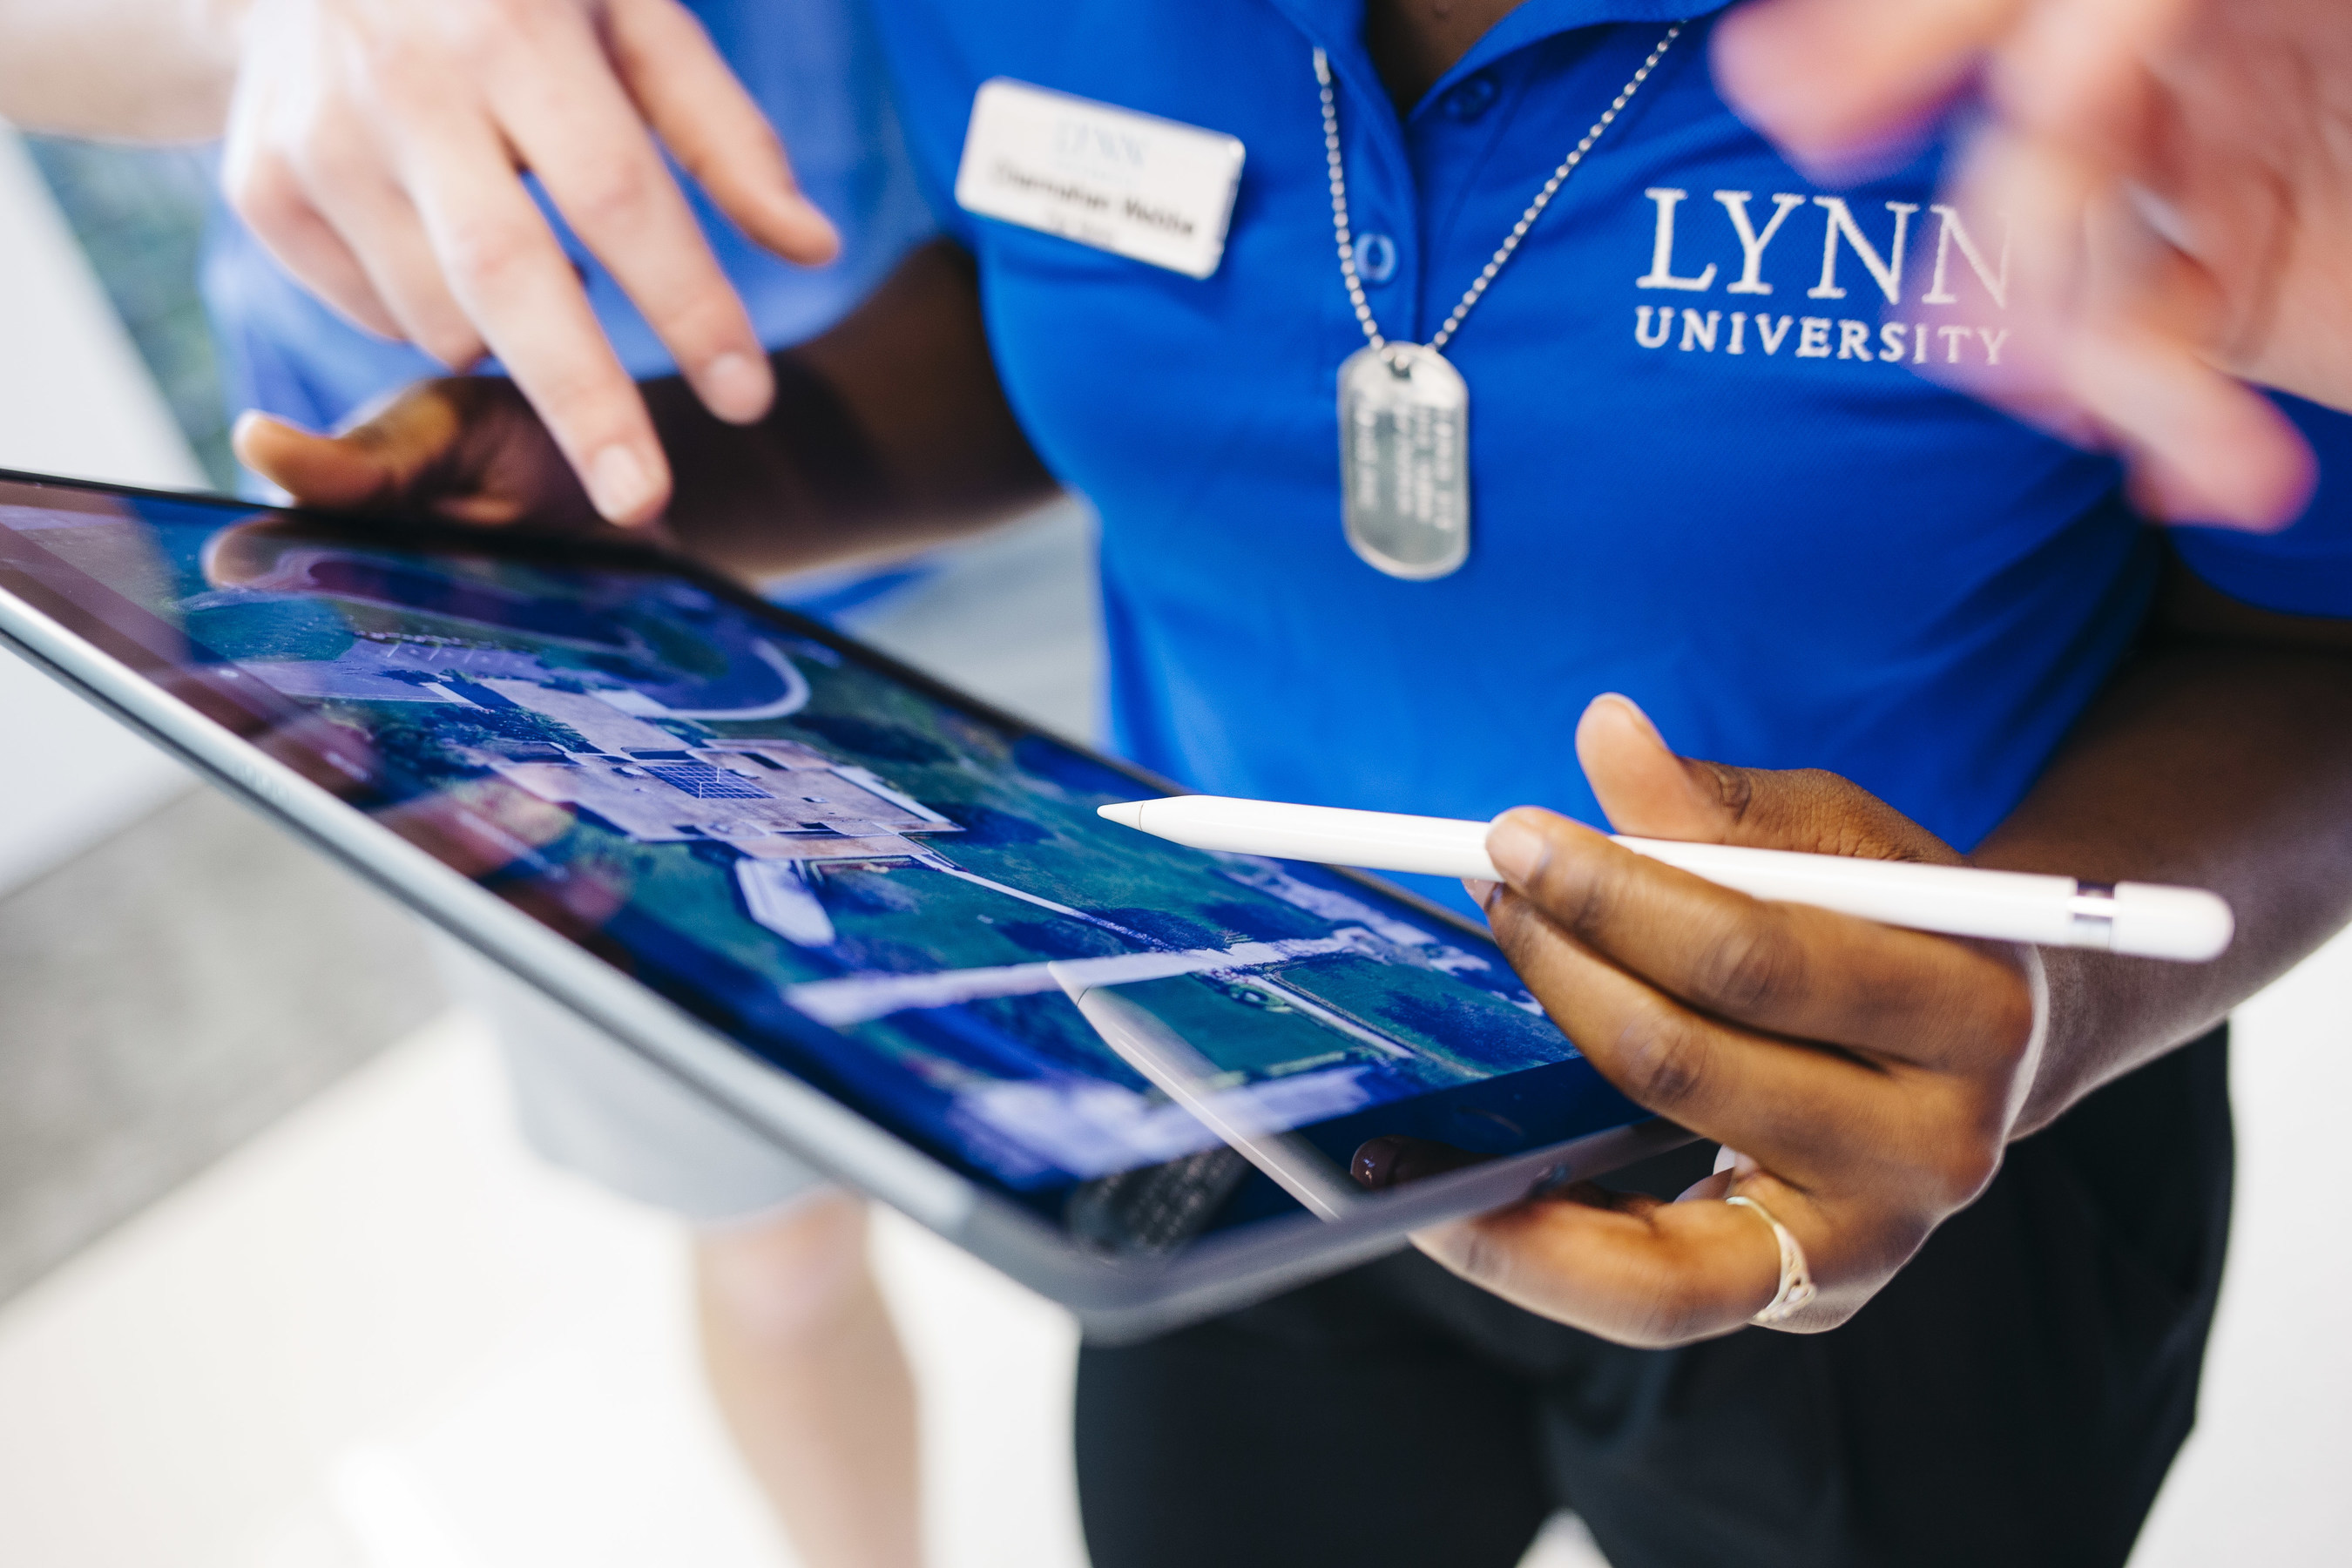 Lynn University students and faculty experience iPad Pro and Apple Pencil as learning tools for the first time.